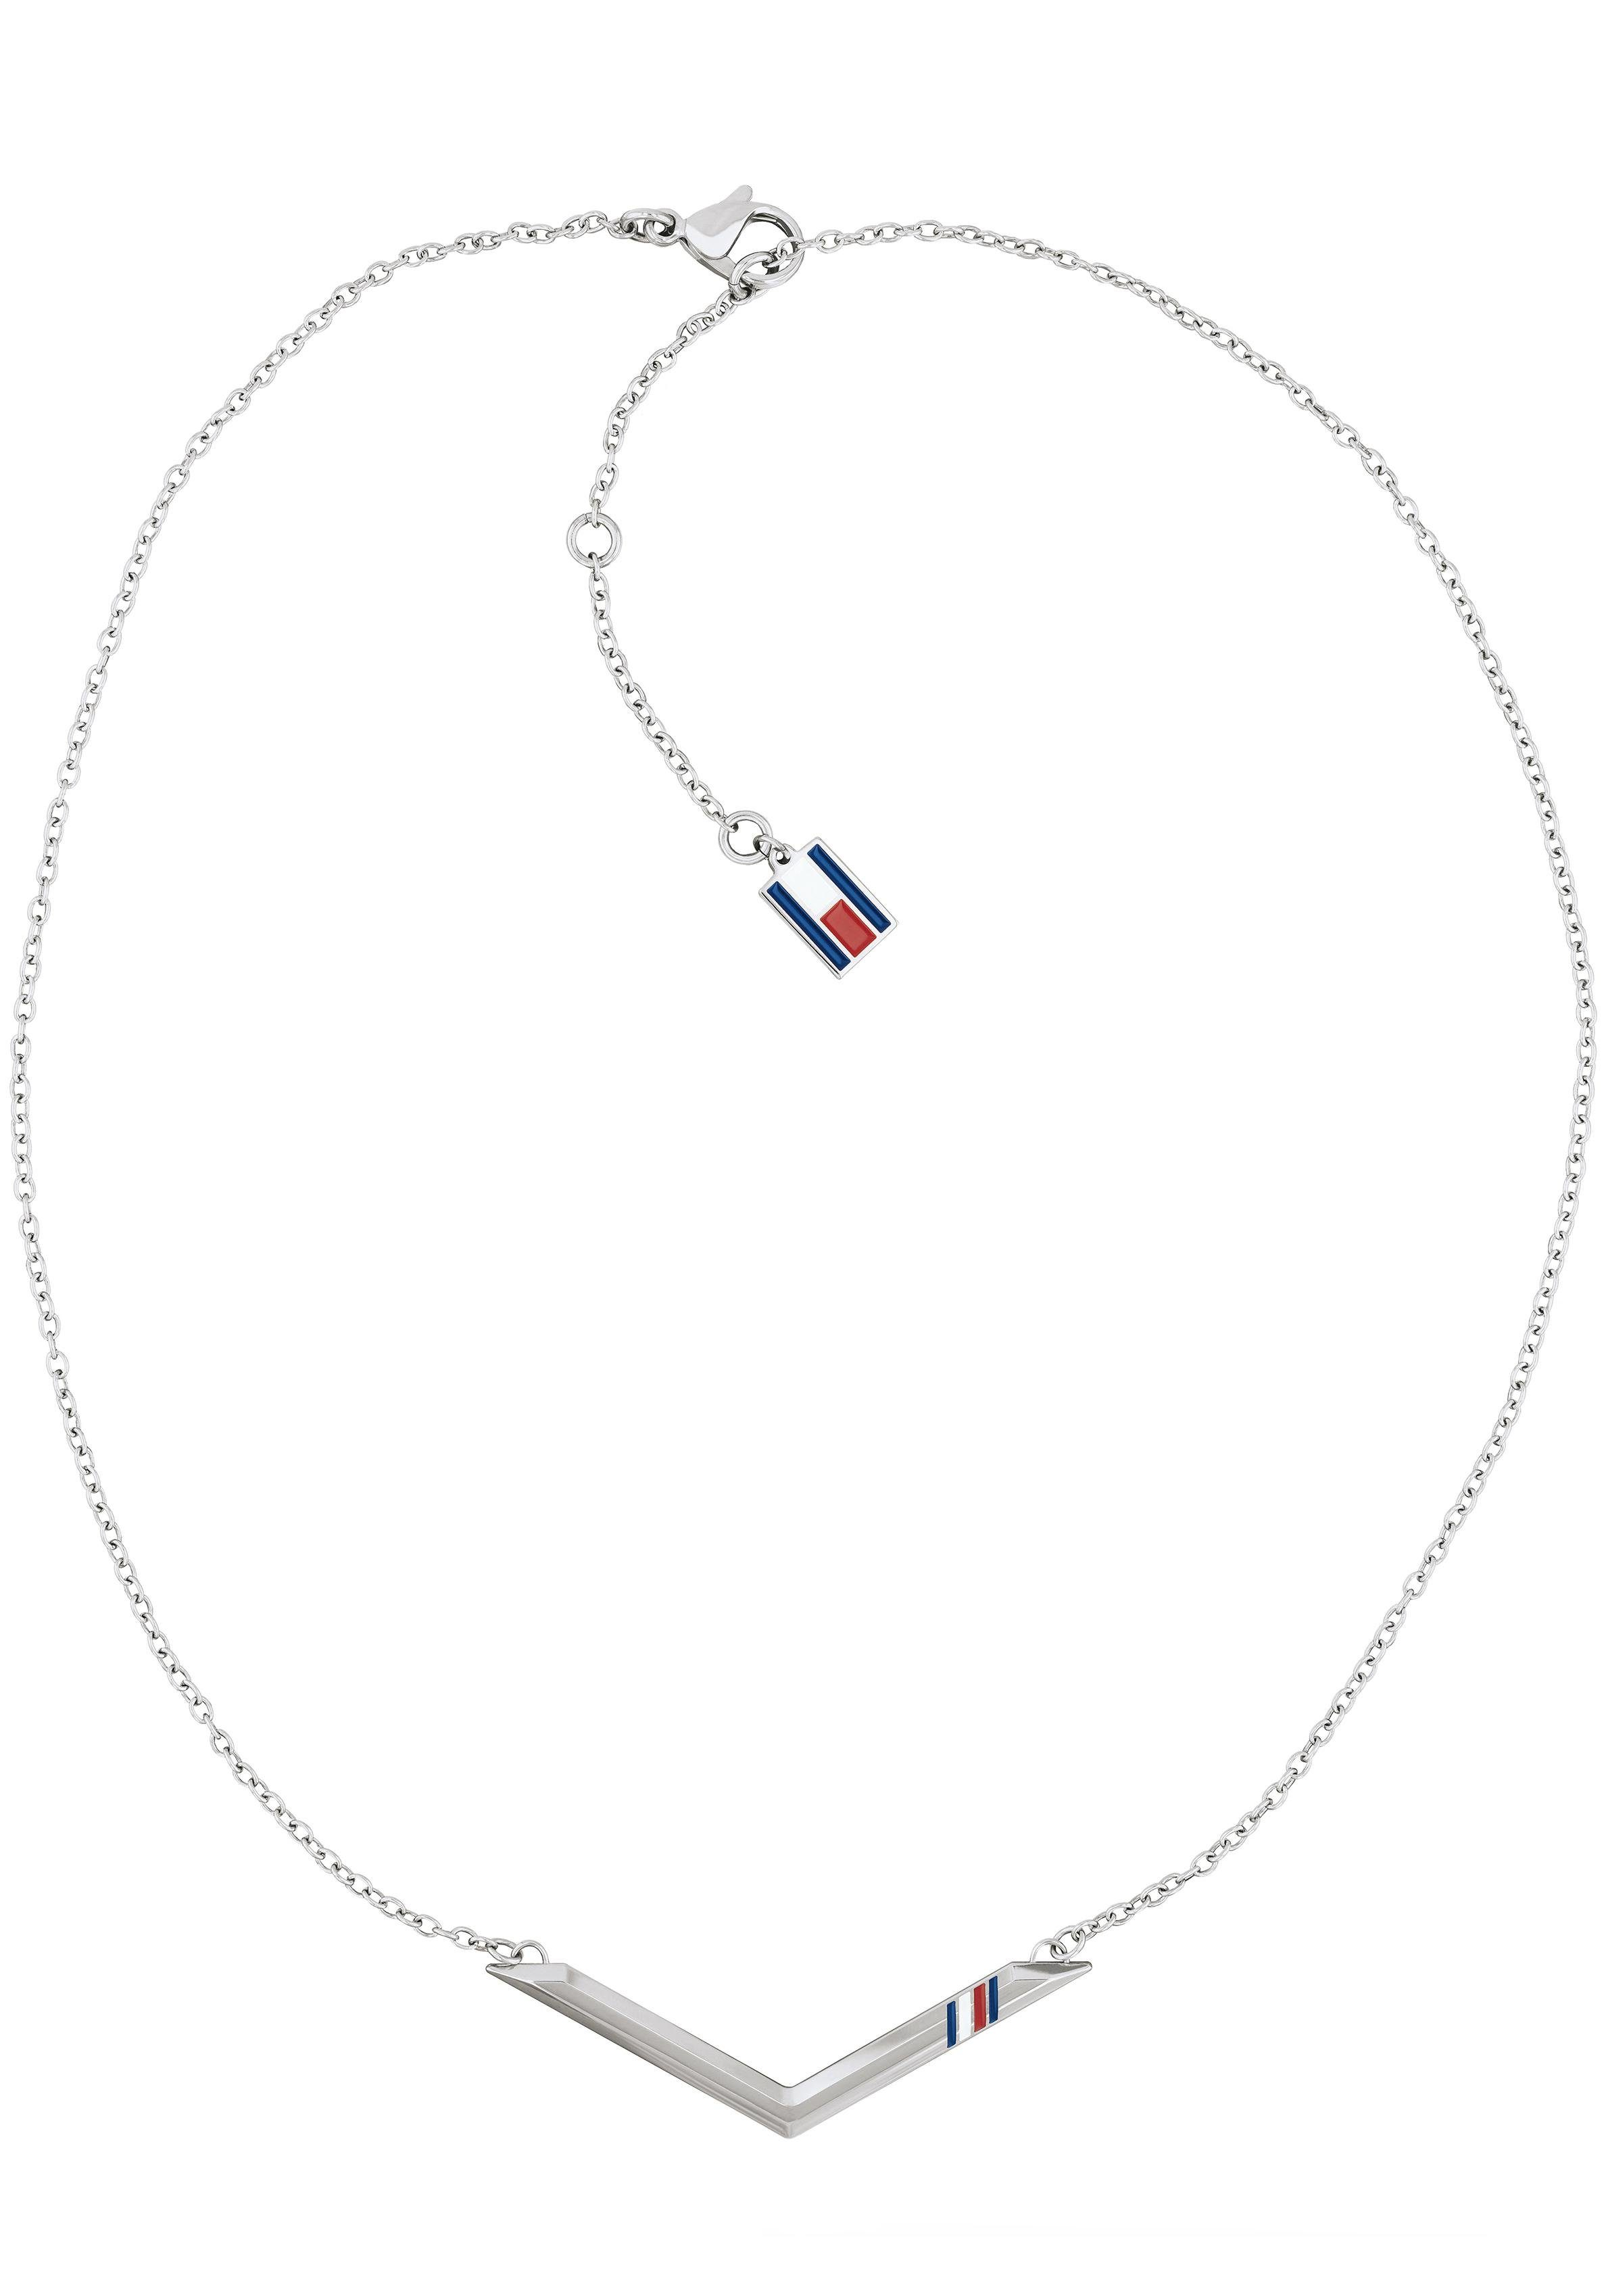 TOMMY HILFIGER Edelstahlkette »CLASSIC SIGNATURE, 2701078« mit Emaille